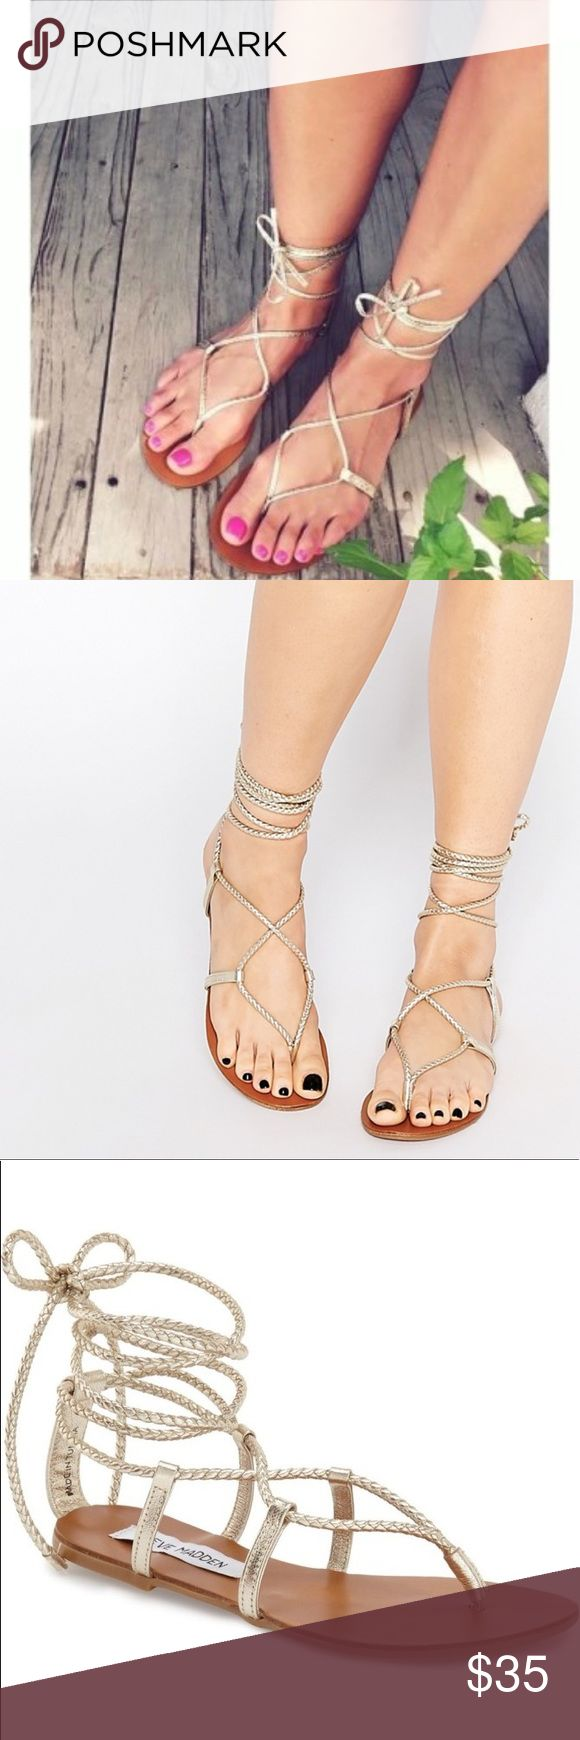 ✨Steve Madden silver gladiator sandals ✨Steve Madden silver gladiator sandals  Metallic silver.  Open toe & open back  High Quality – great condition Size 6 Very comfortable  Purchased from DSW Steve Madden Shoes Sandals